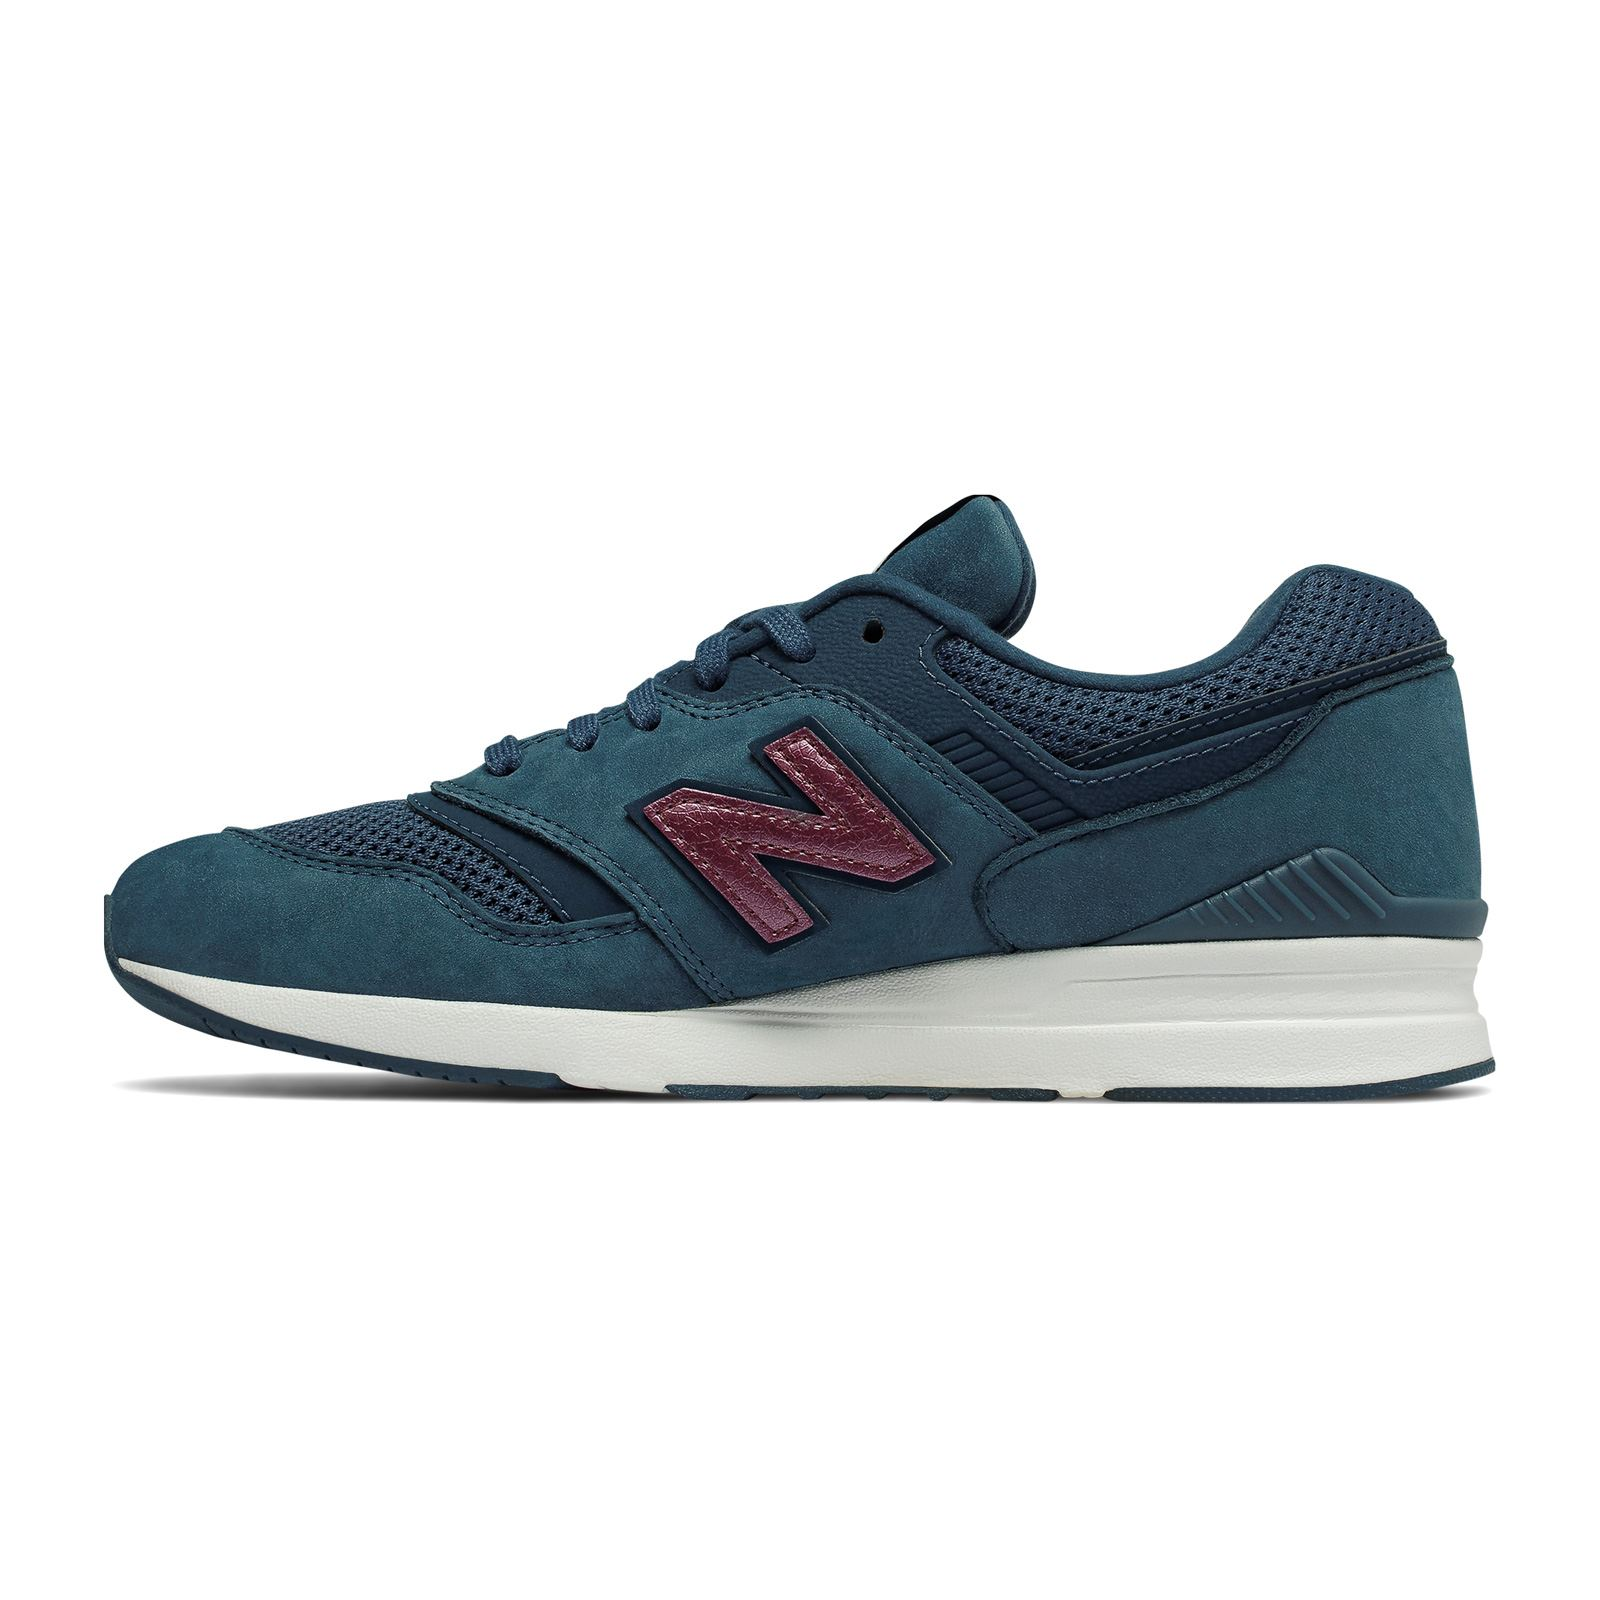 new balance wl697 turnschuhe sneakers entenblau brandalley. Black Bedroom Furniture Sets. Home Design Ideas